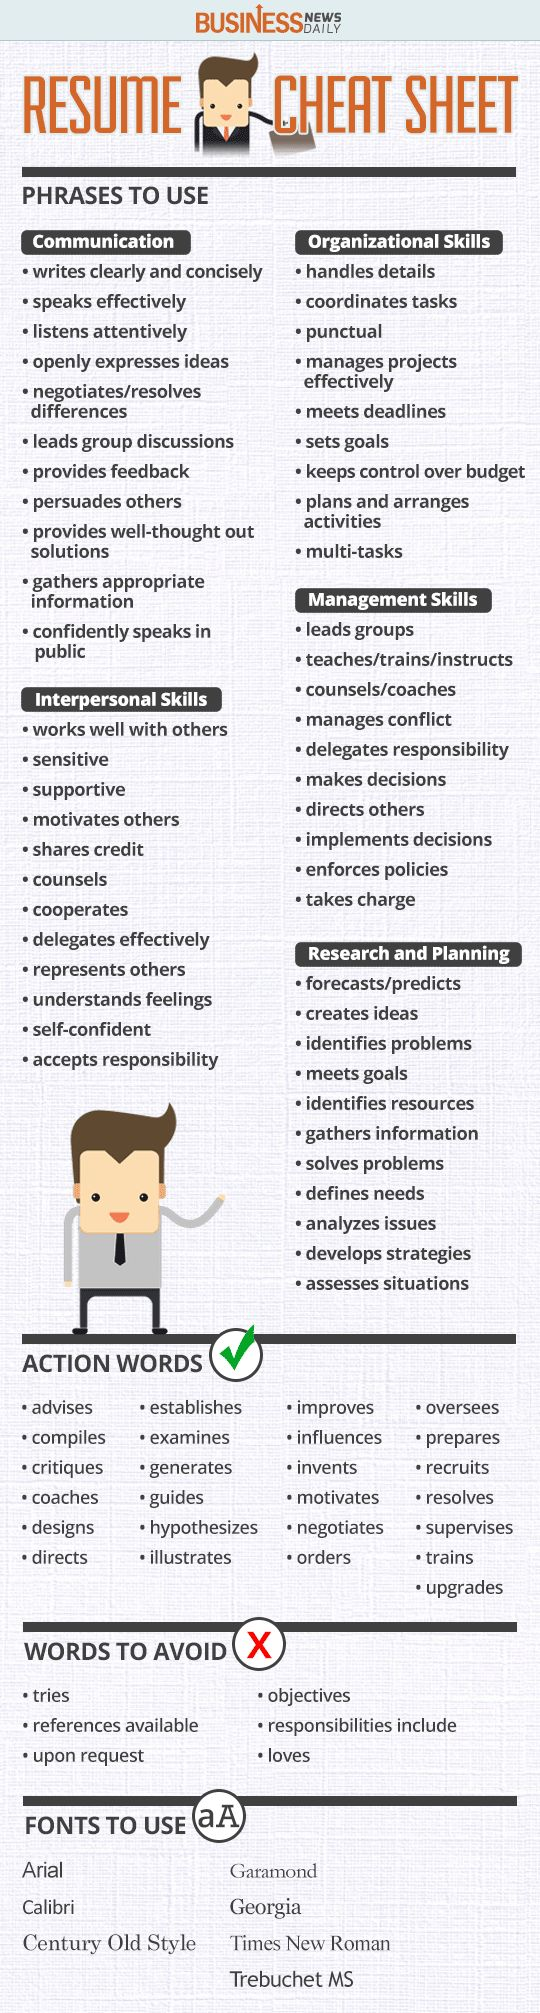 Opposenewapstandardsus  Marvellous  Ideas About Resume On Pinterest  Cv Format Resume Cv And  With Marvelous Resume Cheat Sheet Infographic Andrews Almost Done With A Complete Unit On Employment Which With Astounding Examples Of Customer Service Resumes Also Army Resume Builder In Addition Resume Template In Word And Free Create A Resume As Well As Objective For Resumes Additionally Free Resume Maker Download From Pinterestcom With Opposenewapstandardsus  Marvelous  Ideas About Resume On Pinterest  Cv Format Resume Cv And  With Astounding Resume Cheat Sheet Infographic Andrews Almost Done With A Complete Unit On Employment Which And Marvellous Examples Of Customer Service Resumes Also Army Resume Builder In Addition Resume Template In Word From Pinterestcom